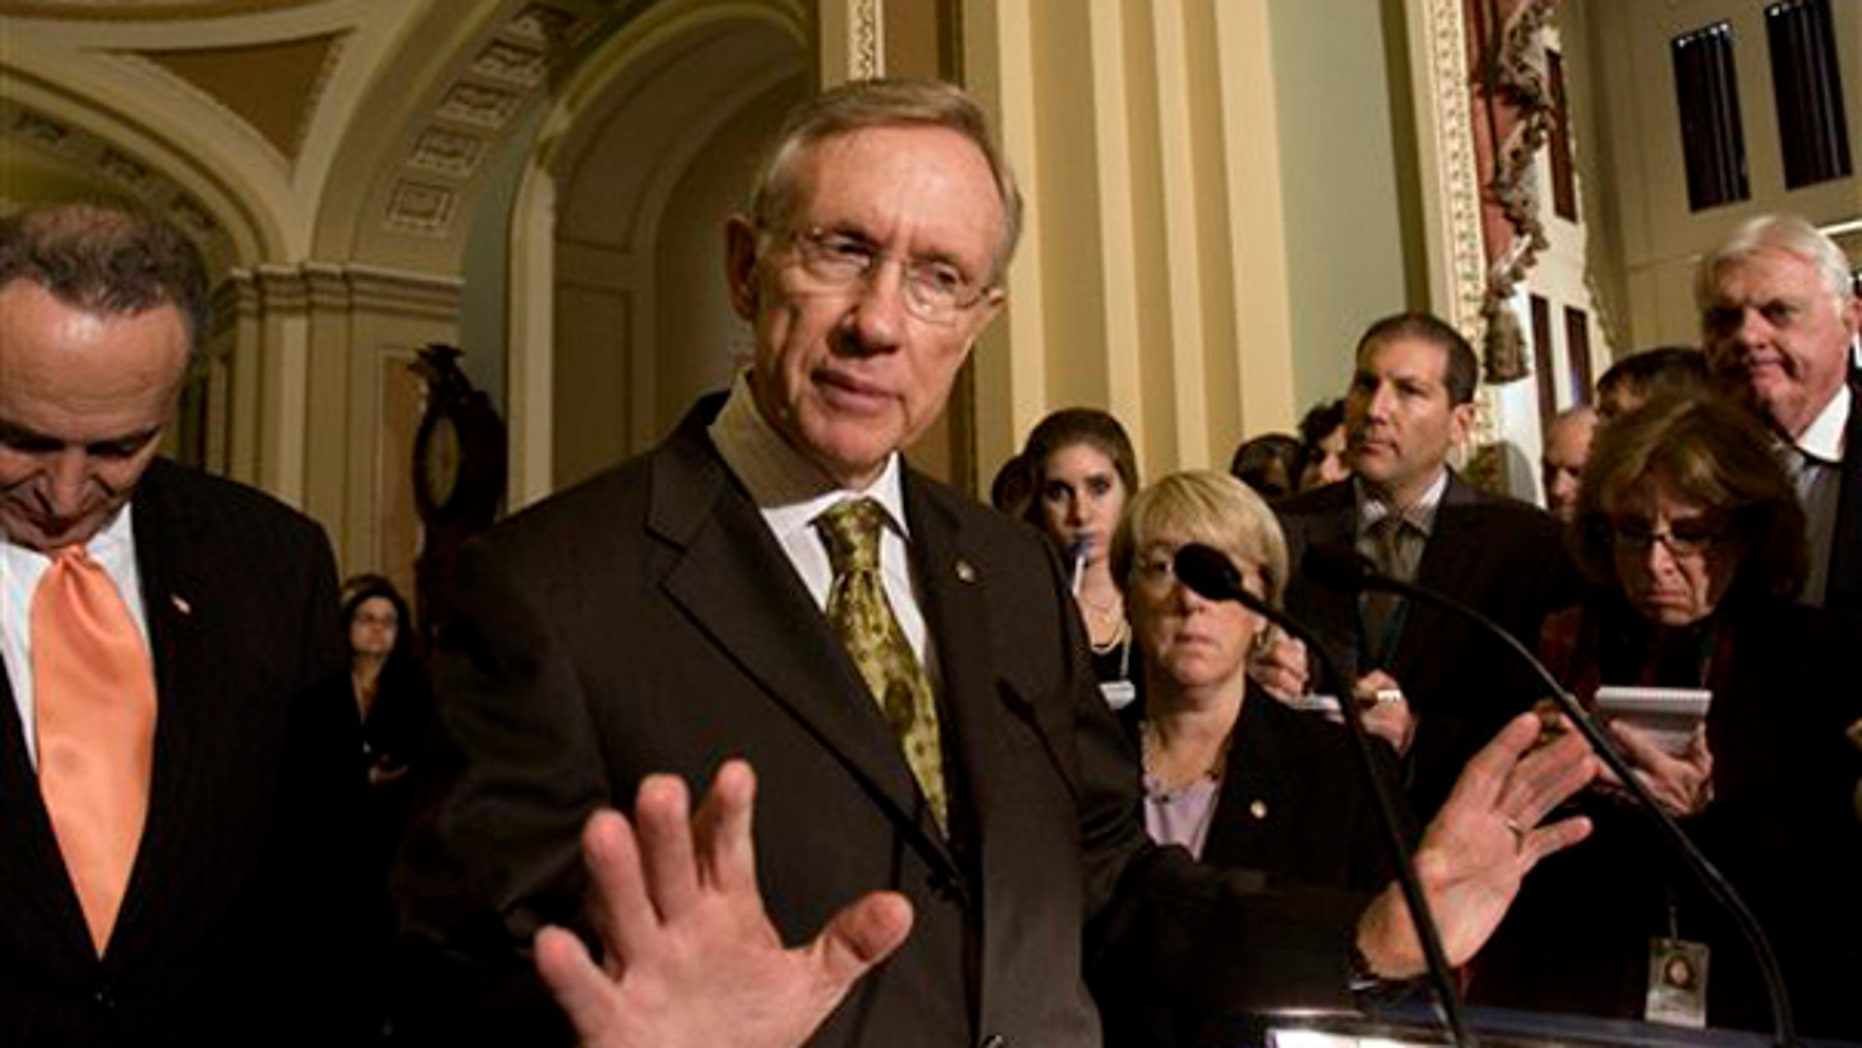 Senate Majority Leader Harry Reid of Nev. gestures on Capitol Hill, Tuesday, Nov. 3, 2009, following  the weekly caucus luncheons. Sen. Charles Schumer, D-N.Y. is at left. (AP Photo)